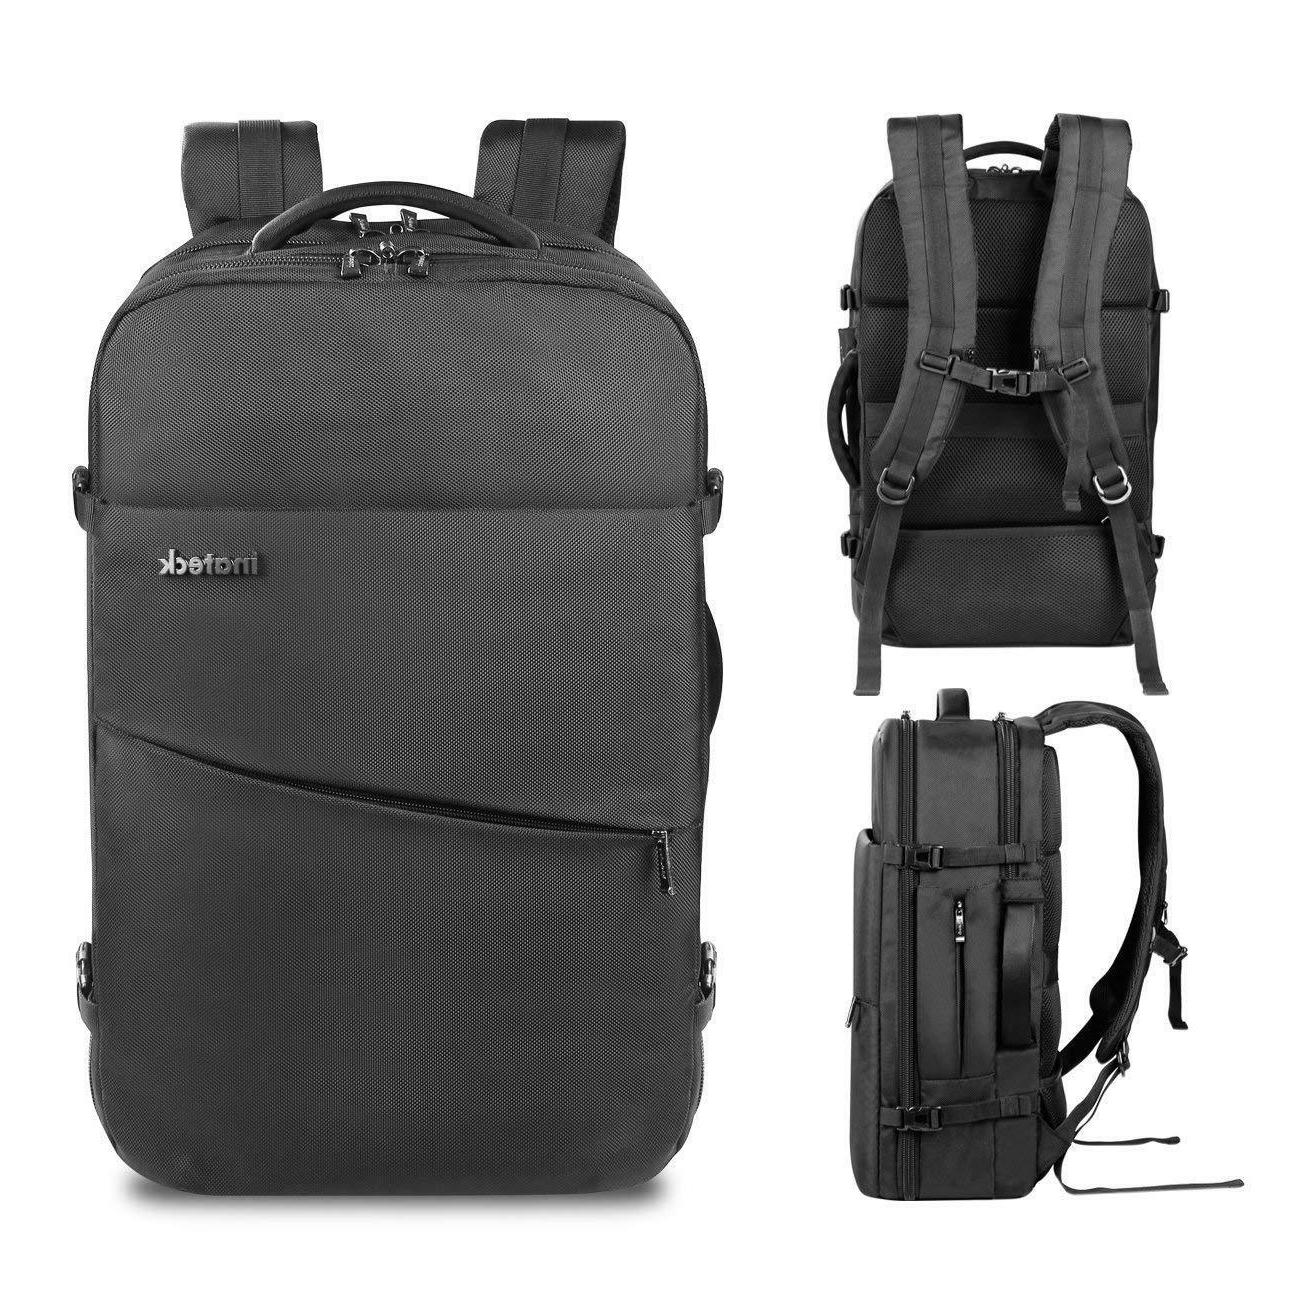 Inateck Travel Backpack, Flight Approved Backpack